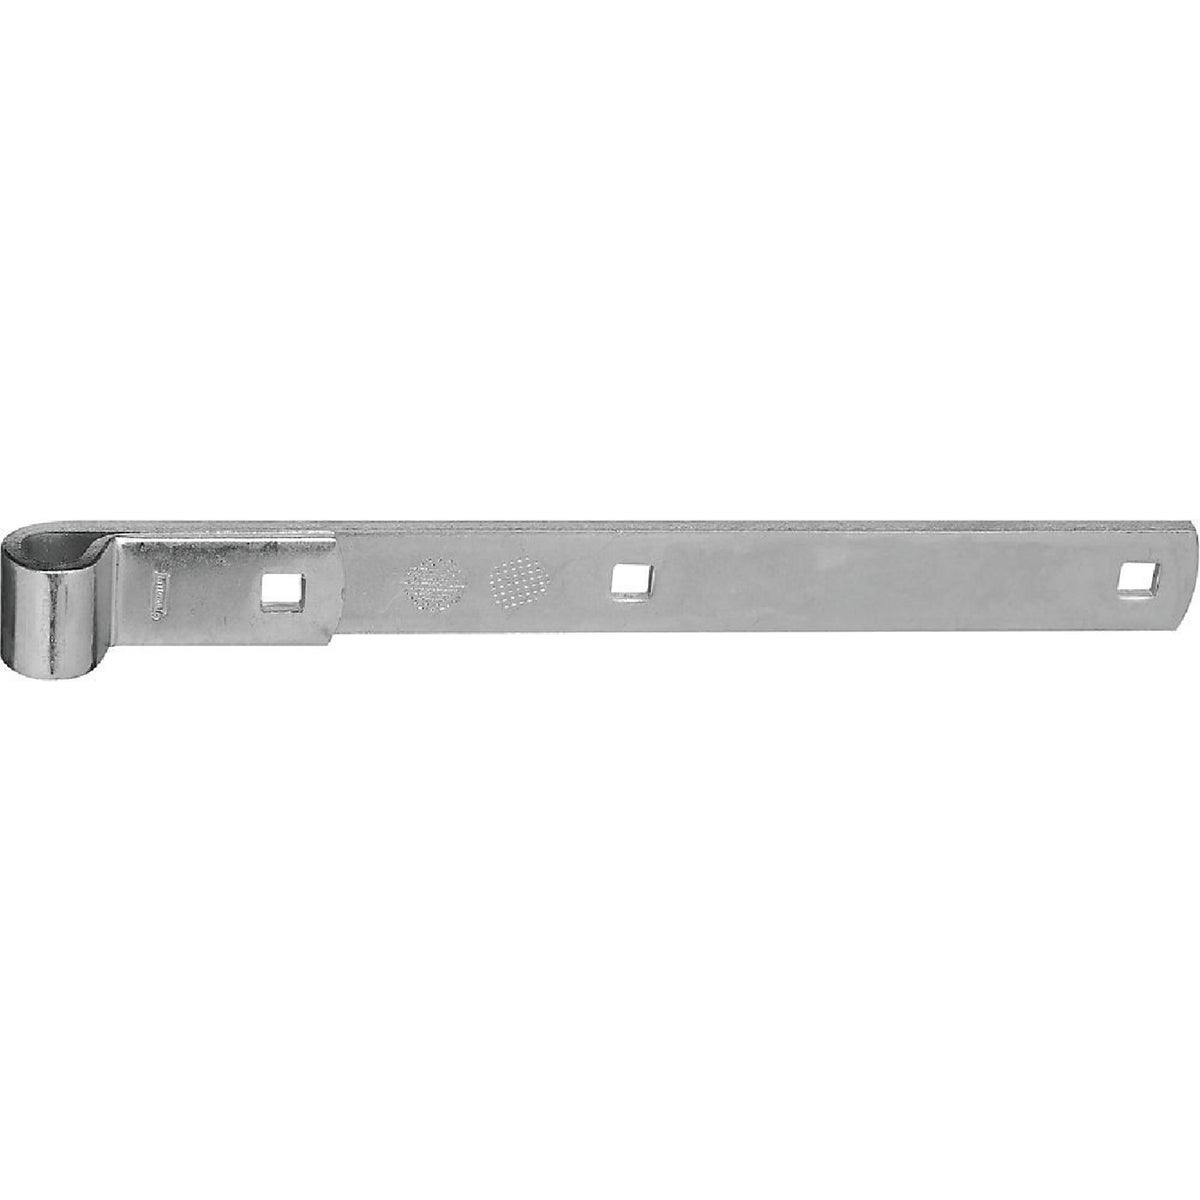 "12"" ZN HINGE STRAP - N130765 by National Mfg Co"